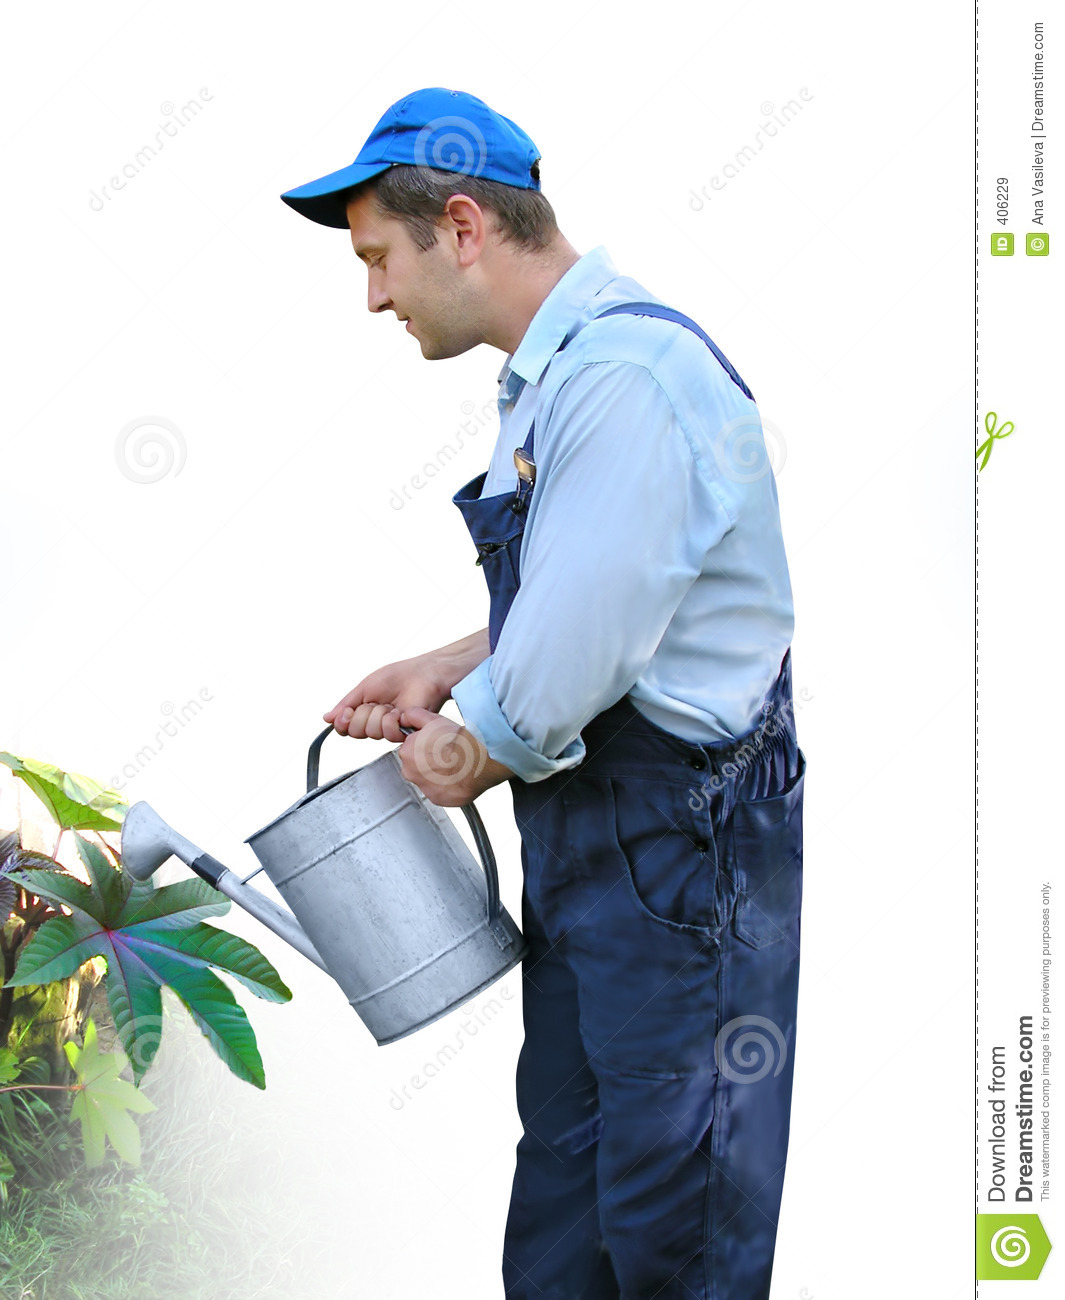 Gardener Worker In Working Clothes Watering Plants With